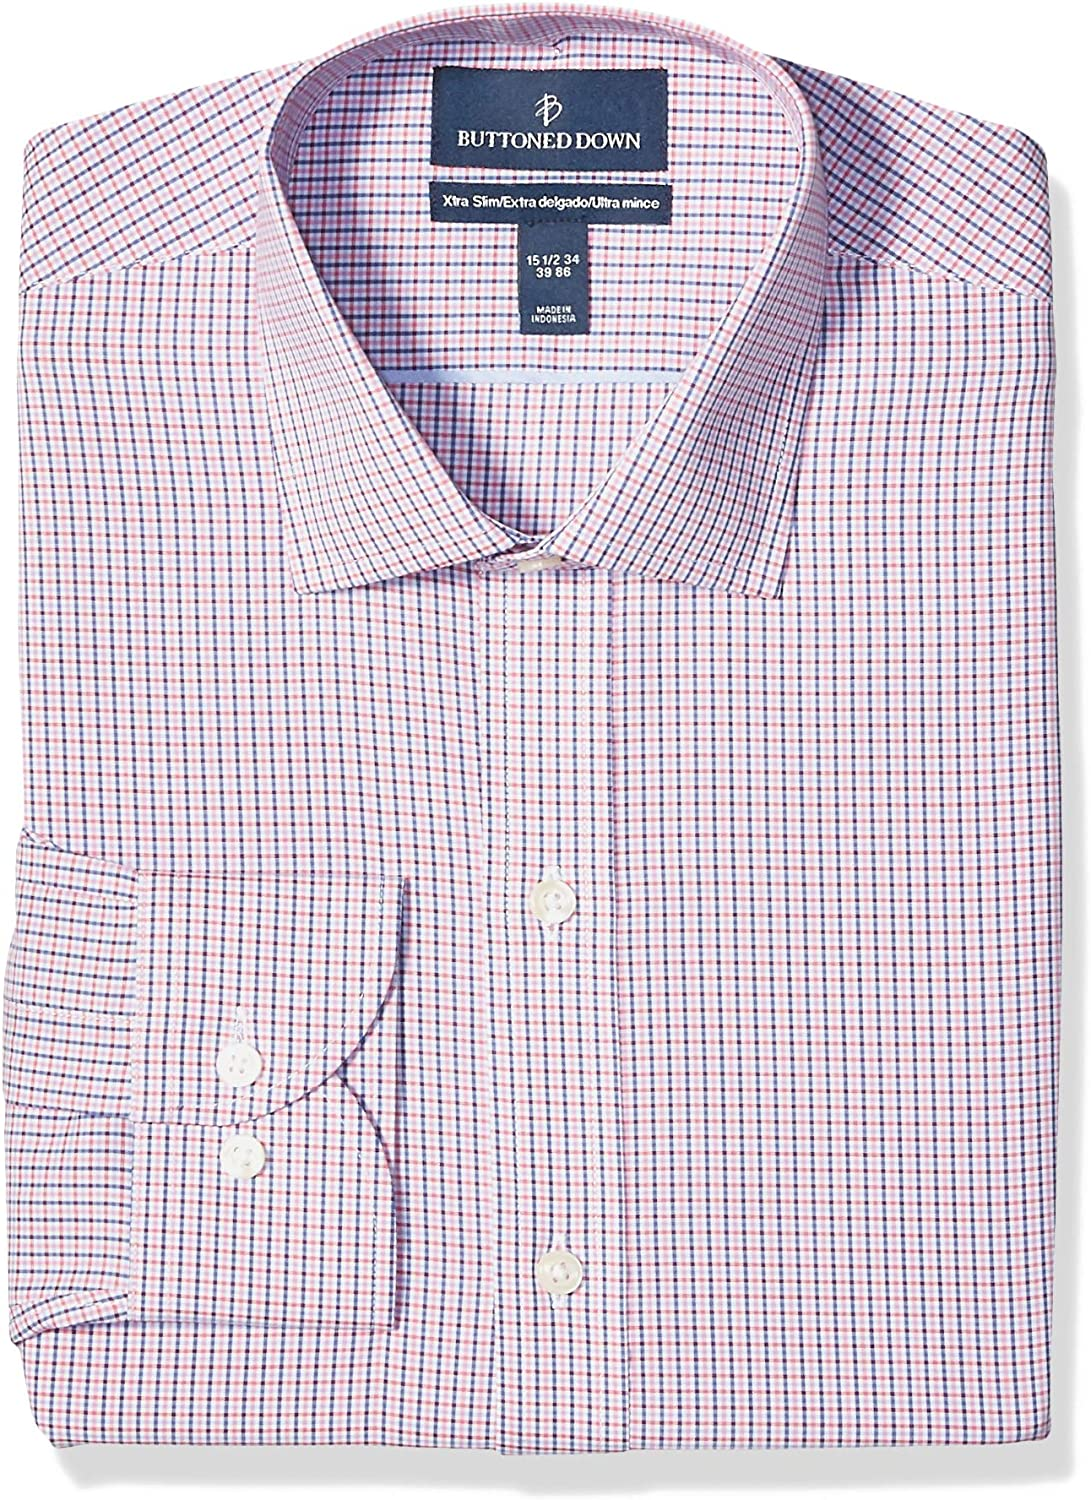 Marchio Buttoned Down Xtra-Slim Fit Pattern Non-Iron Dress Shirt Uomo